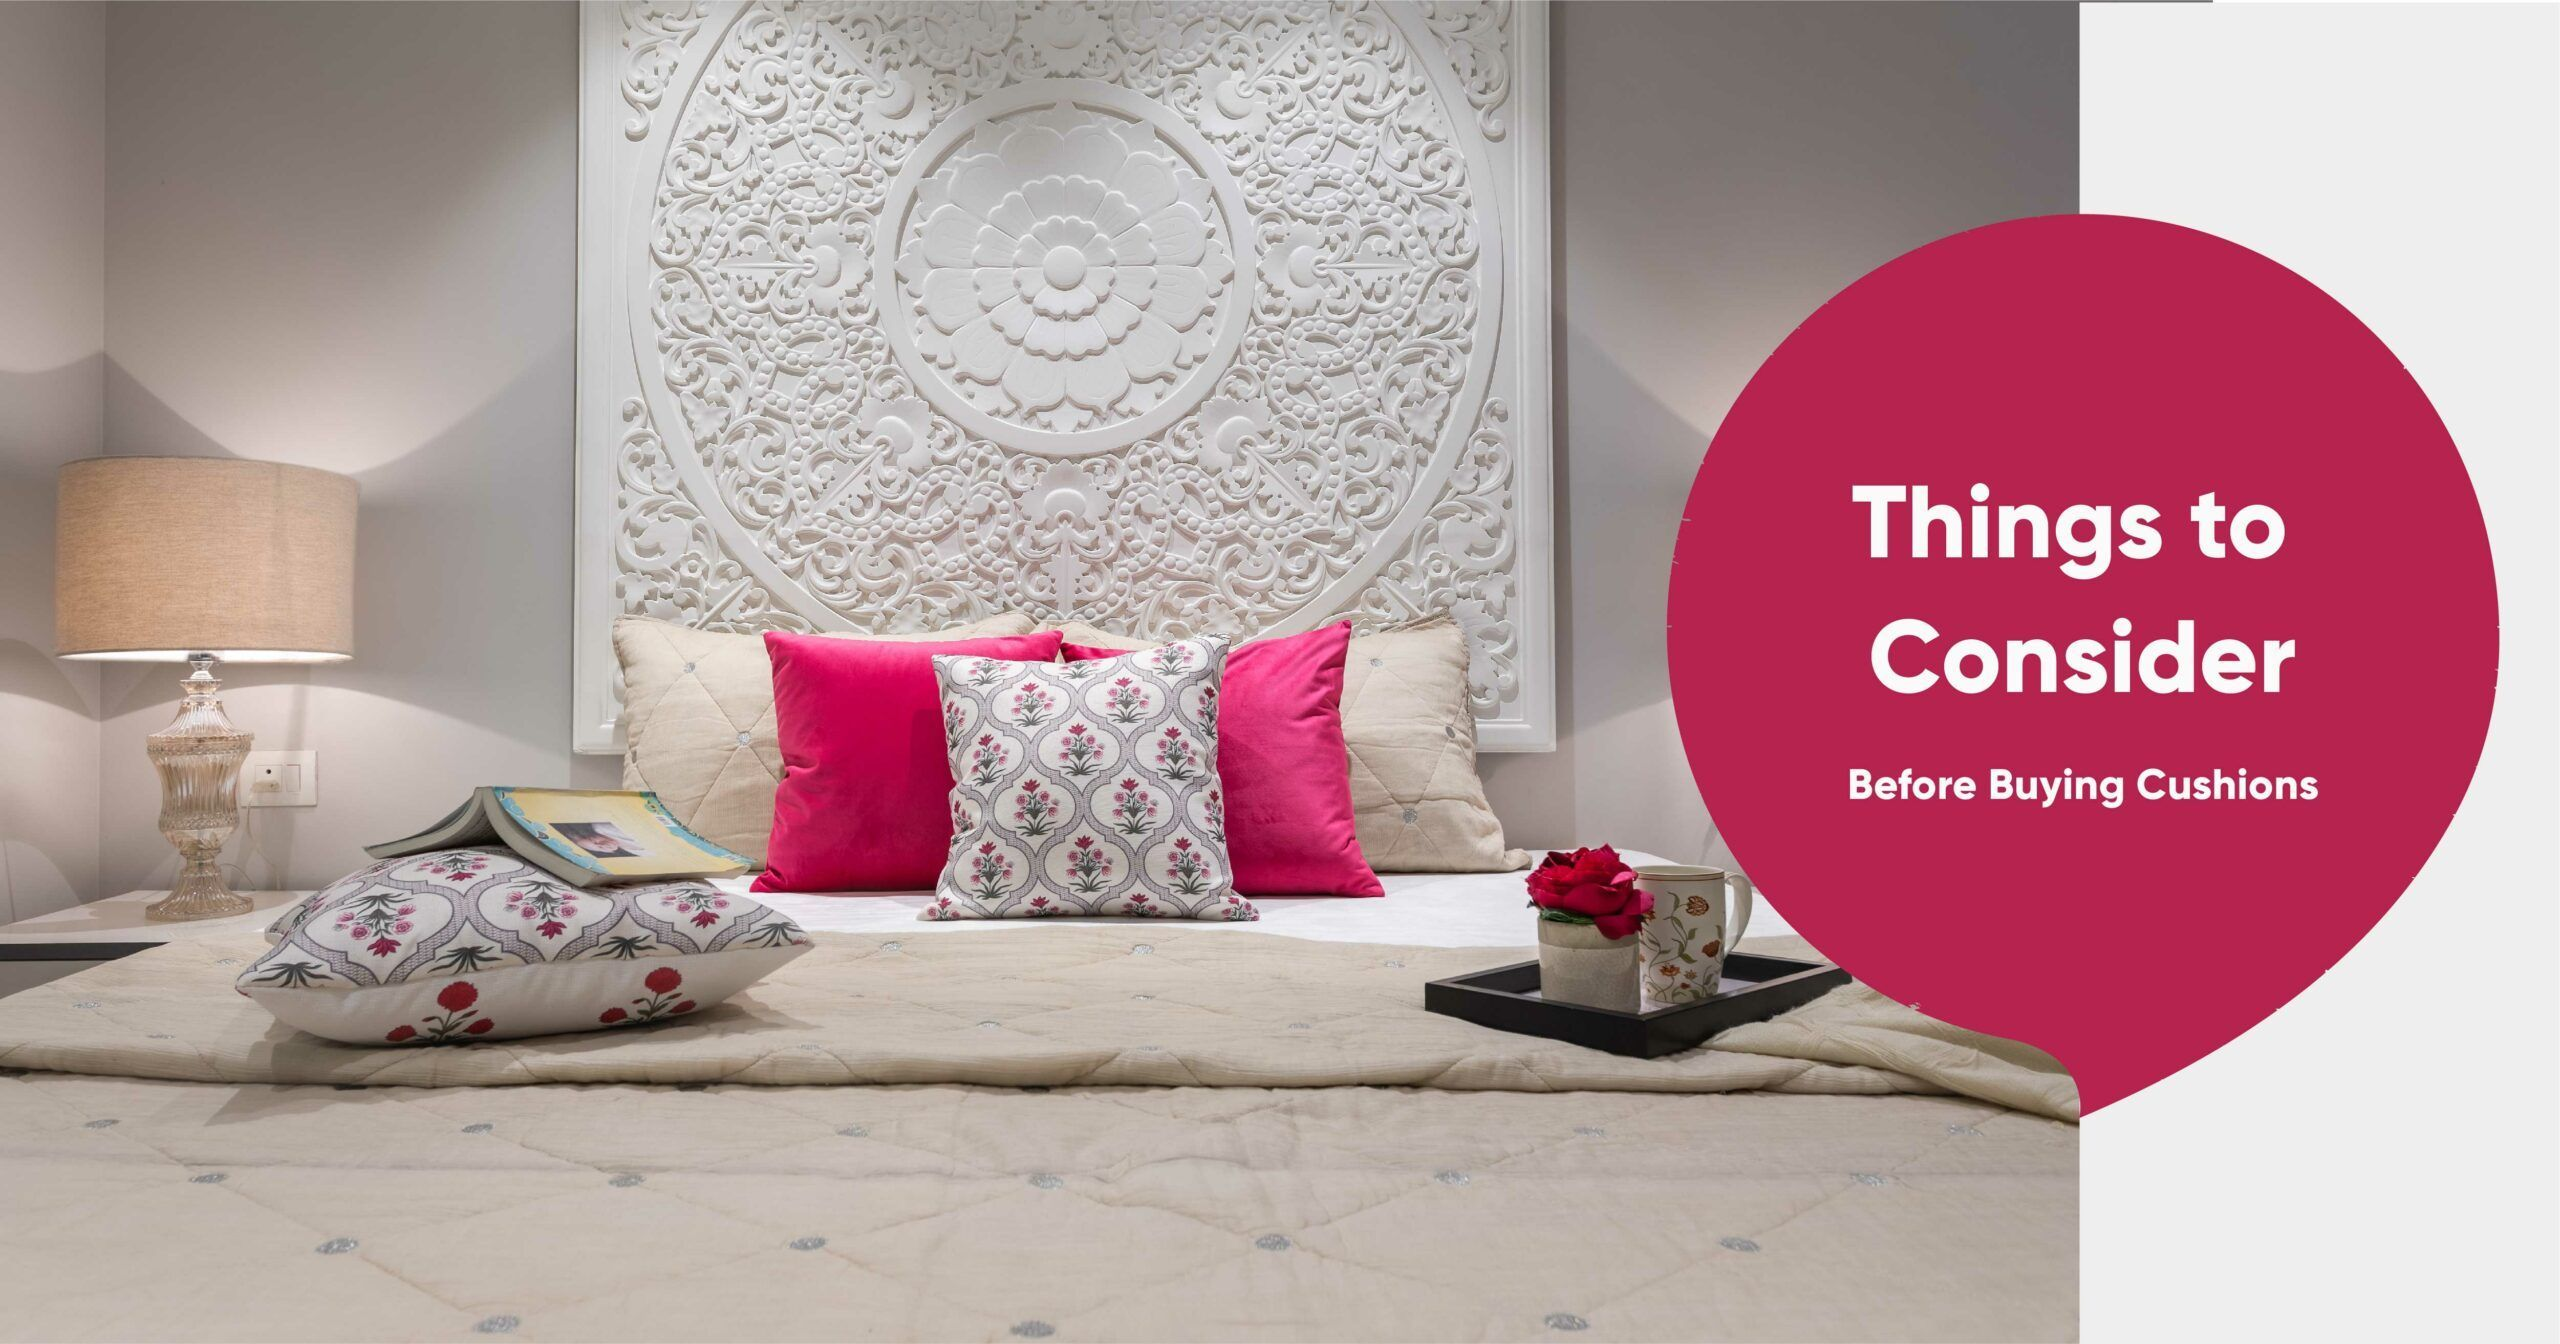 A Comprehensive Cushions Buying Guide That Works for Every Home